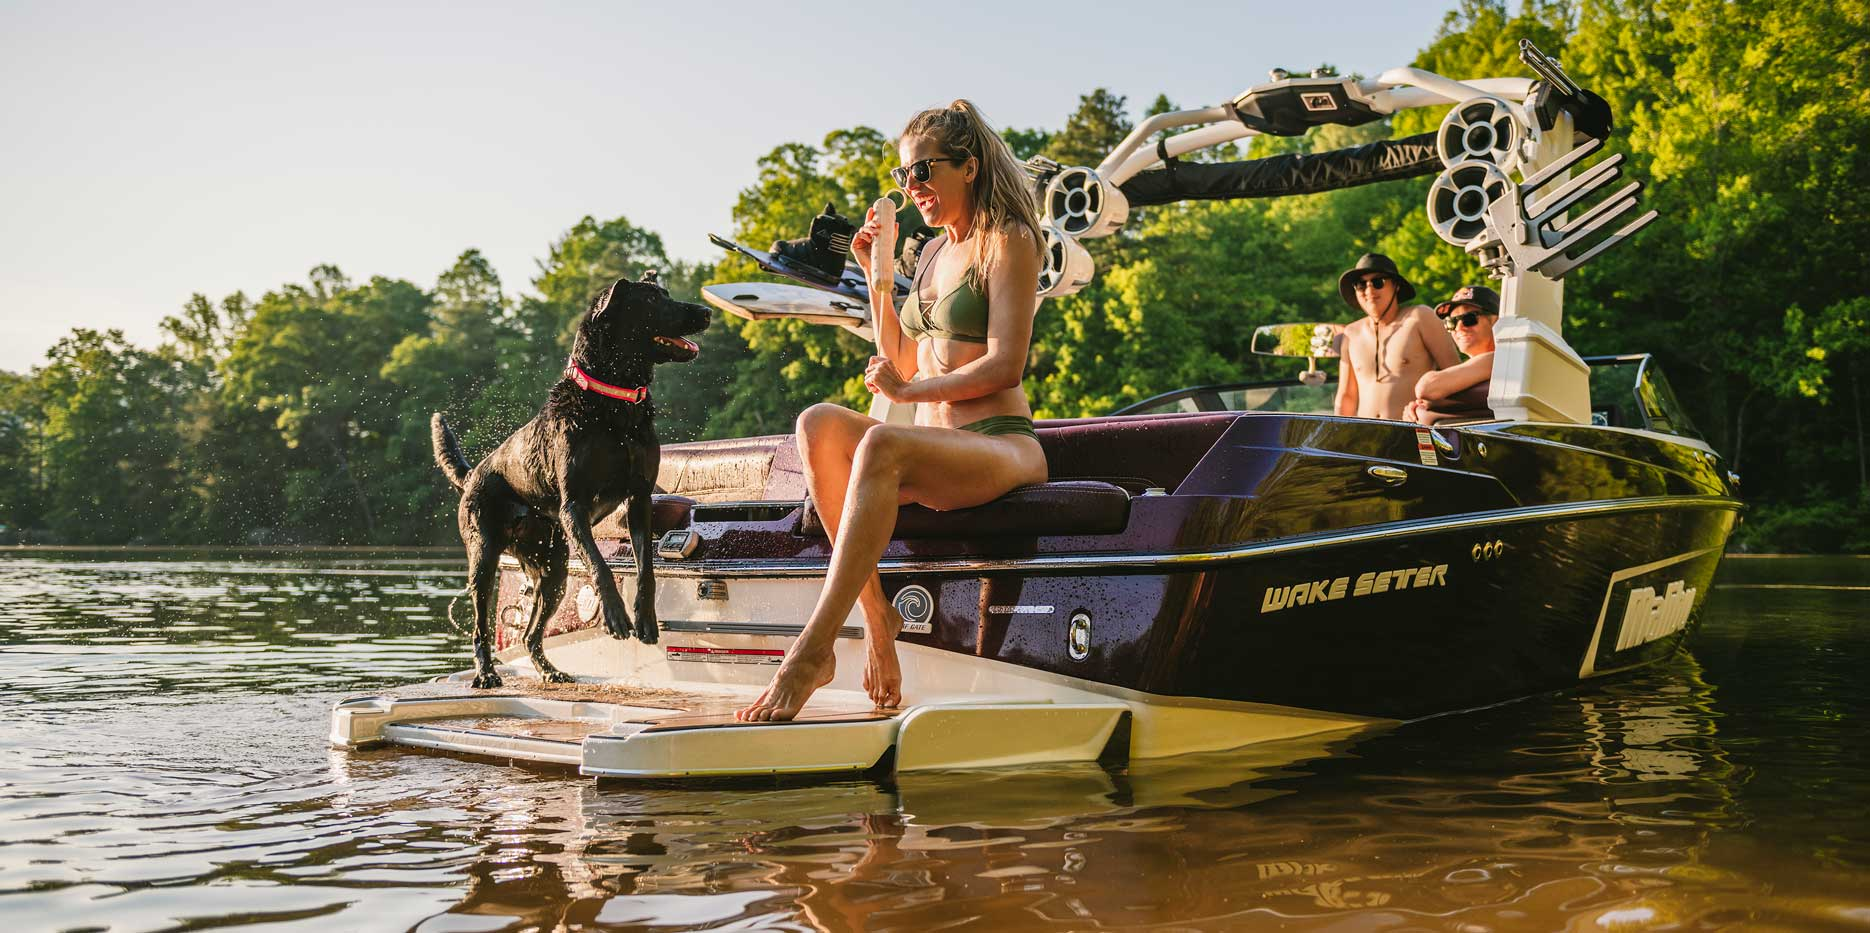 The flip-down swim step offers the ultimate ease of access into the boat or down in the water!